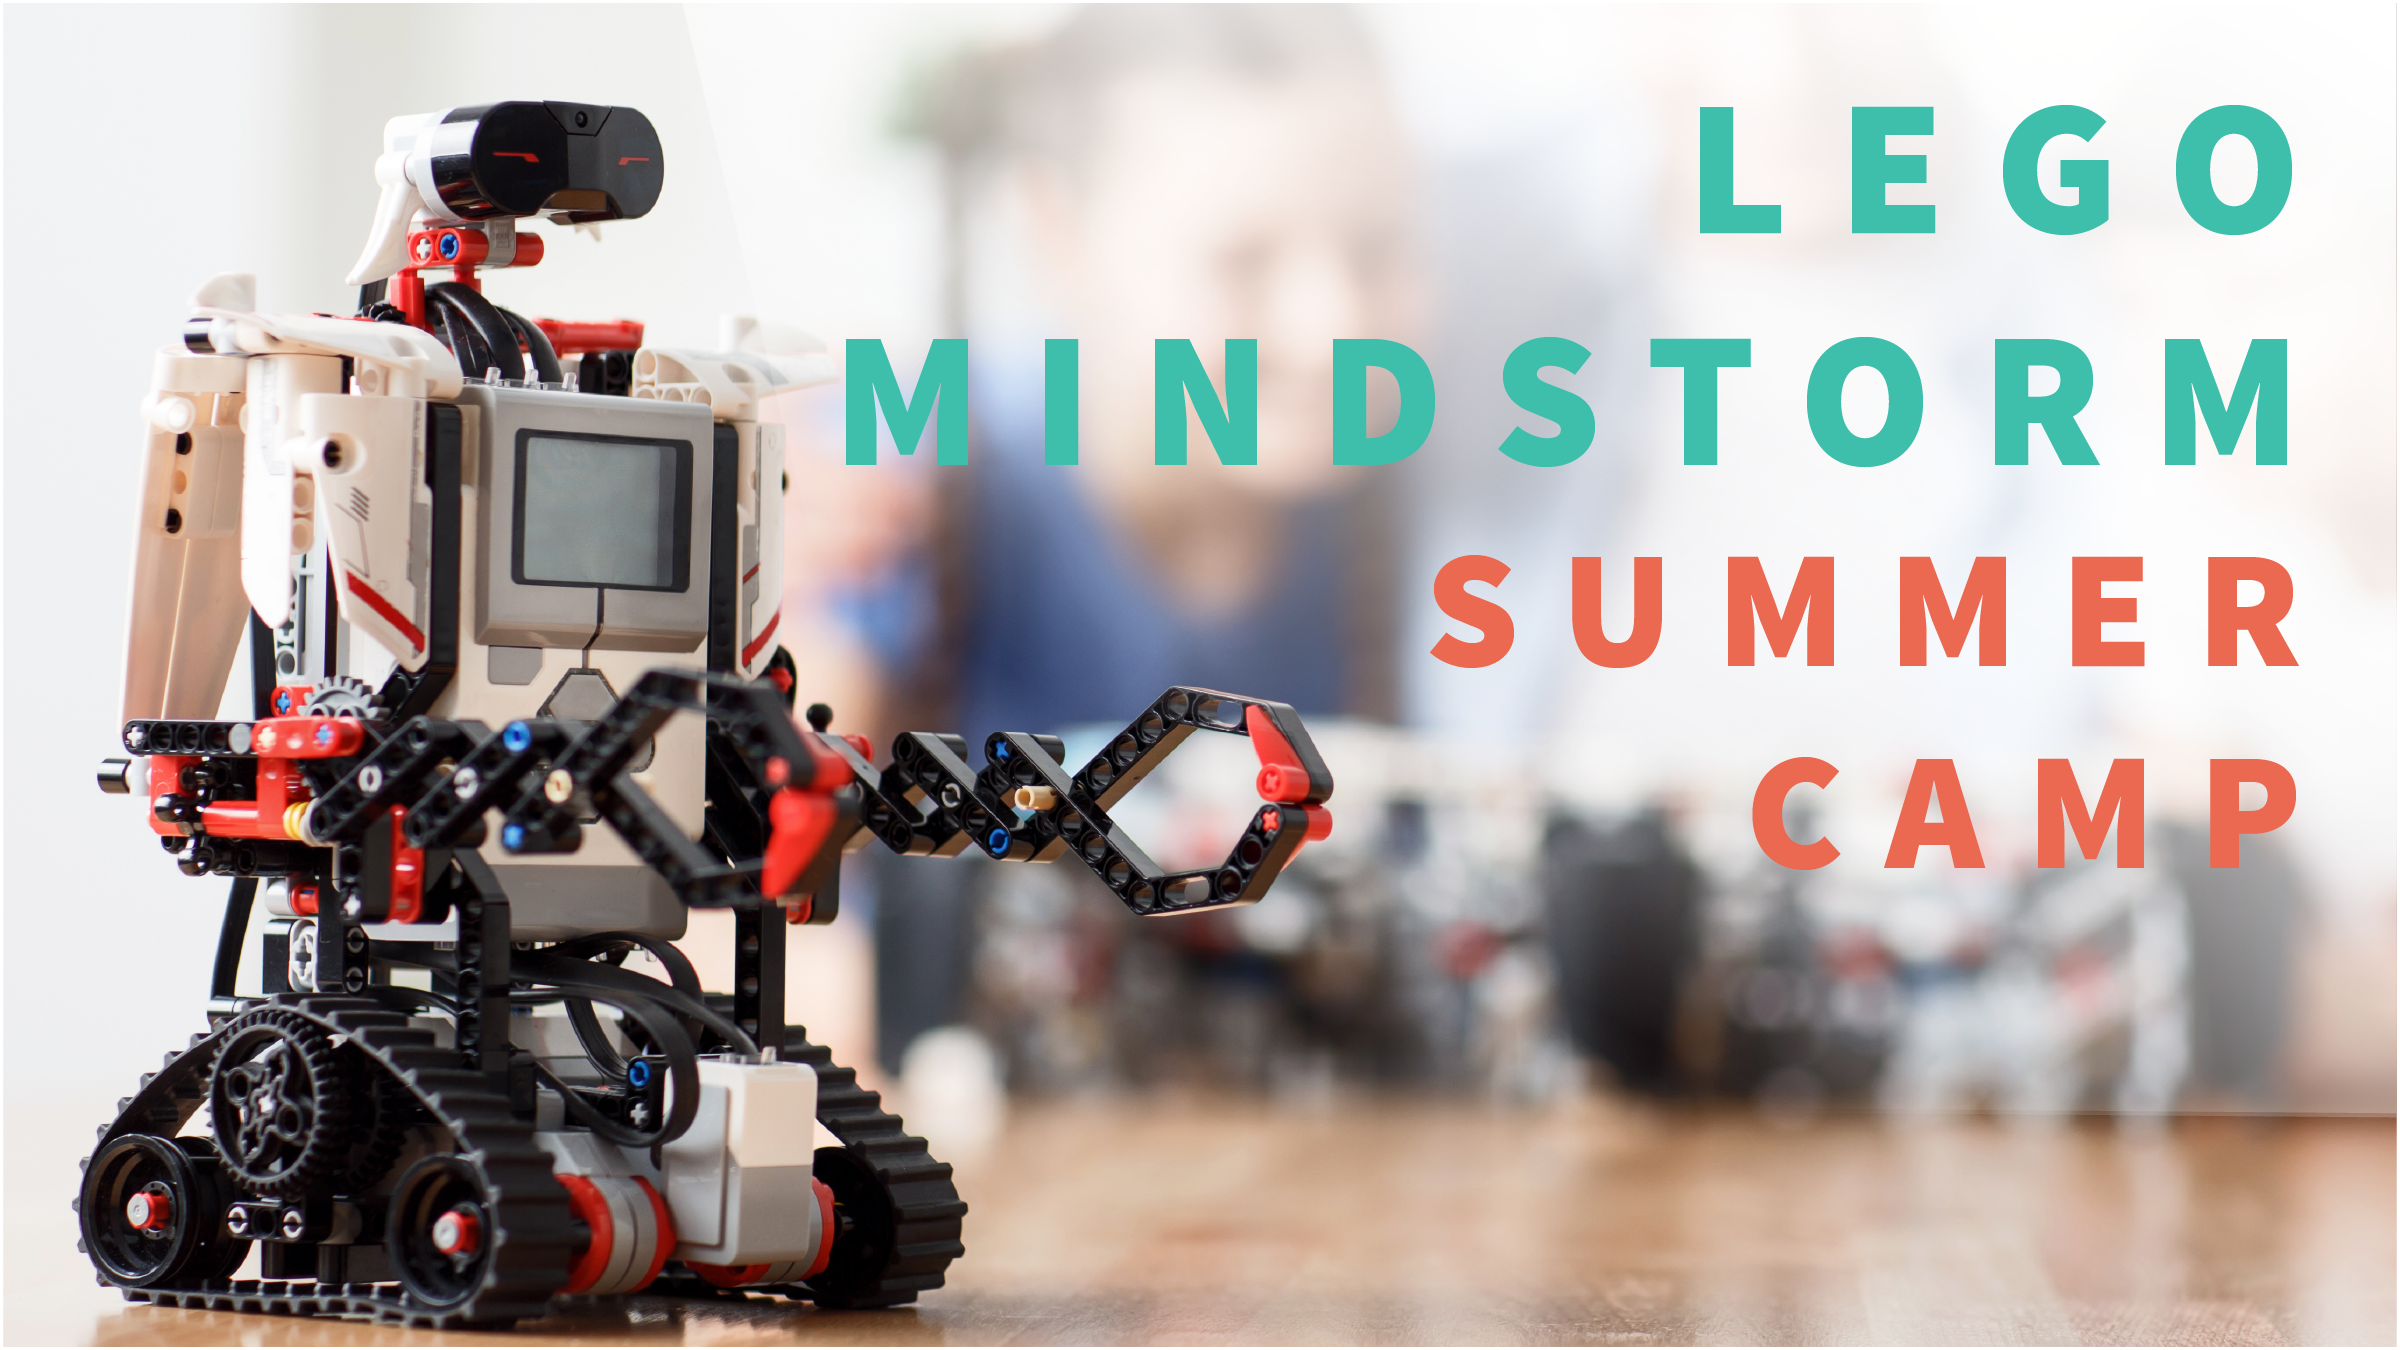 Mindstorm Summer Camp.png